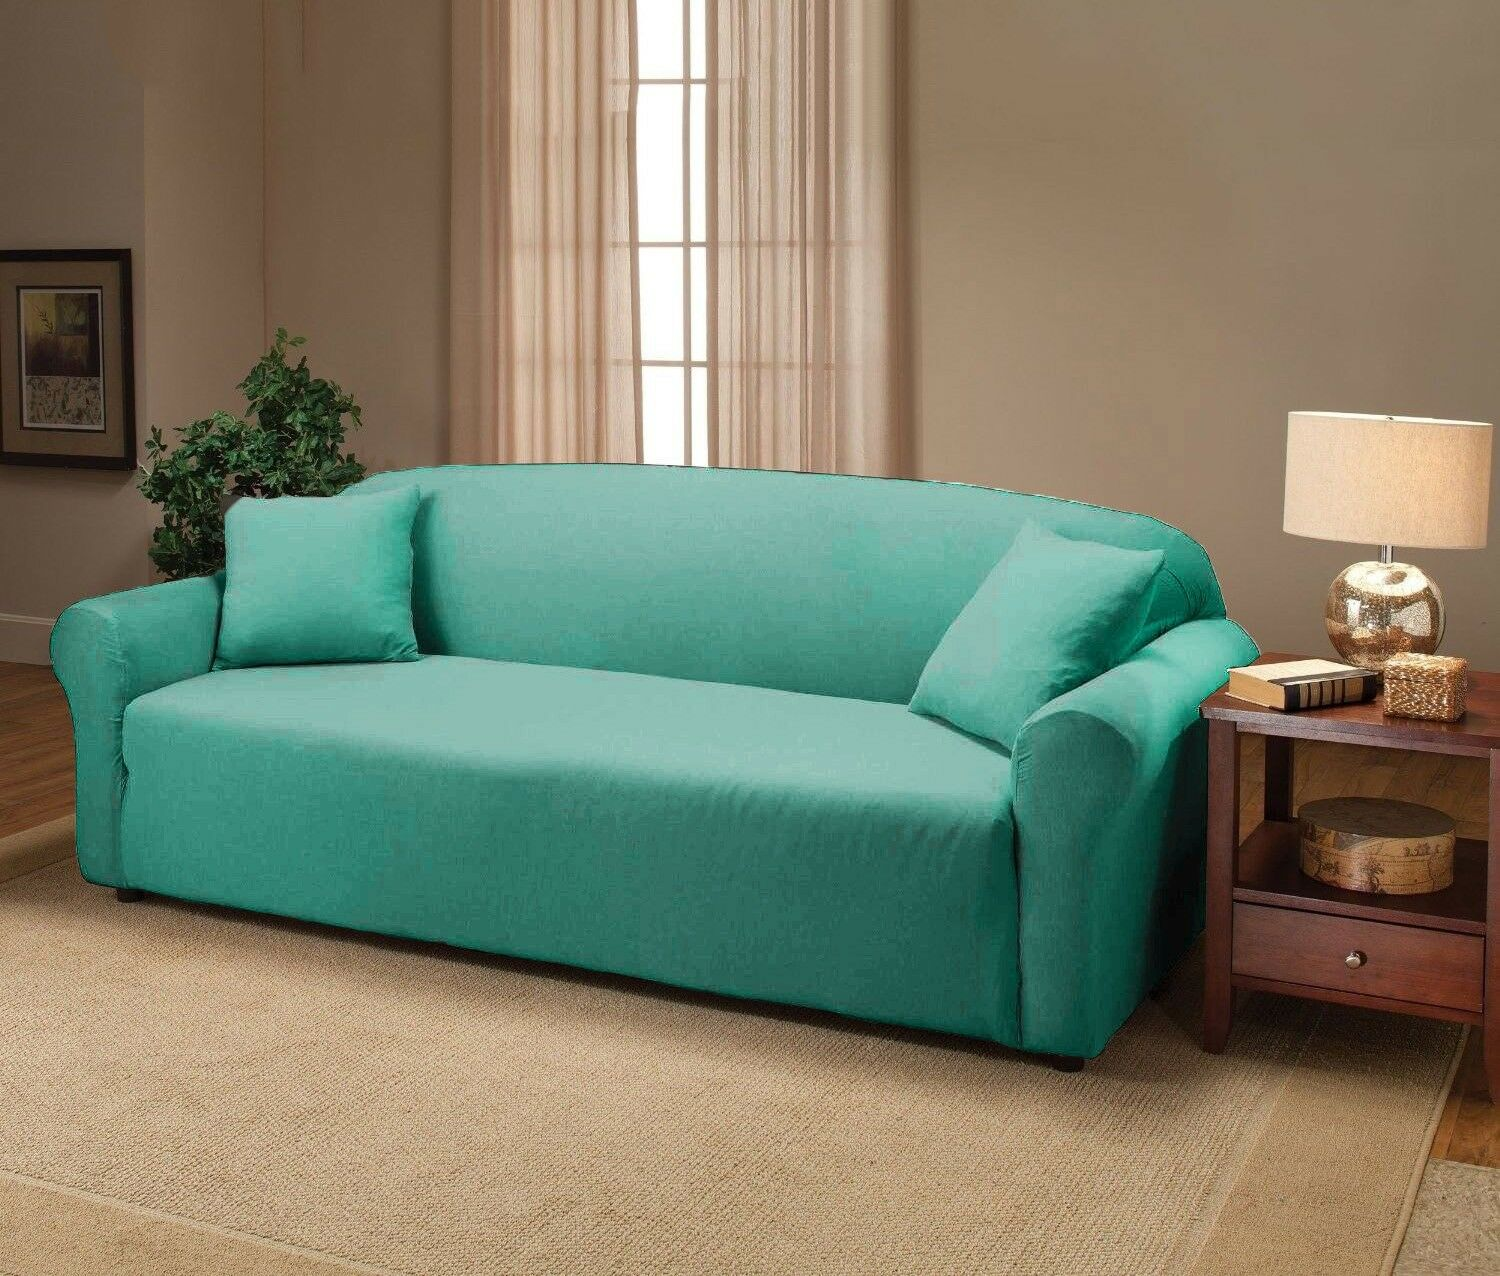 Slip Cover Chairs Aqua Jersey Sofa Stretch Slipcover Couch Cover Chair